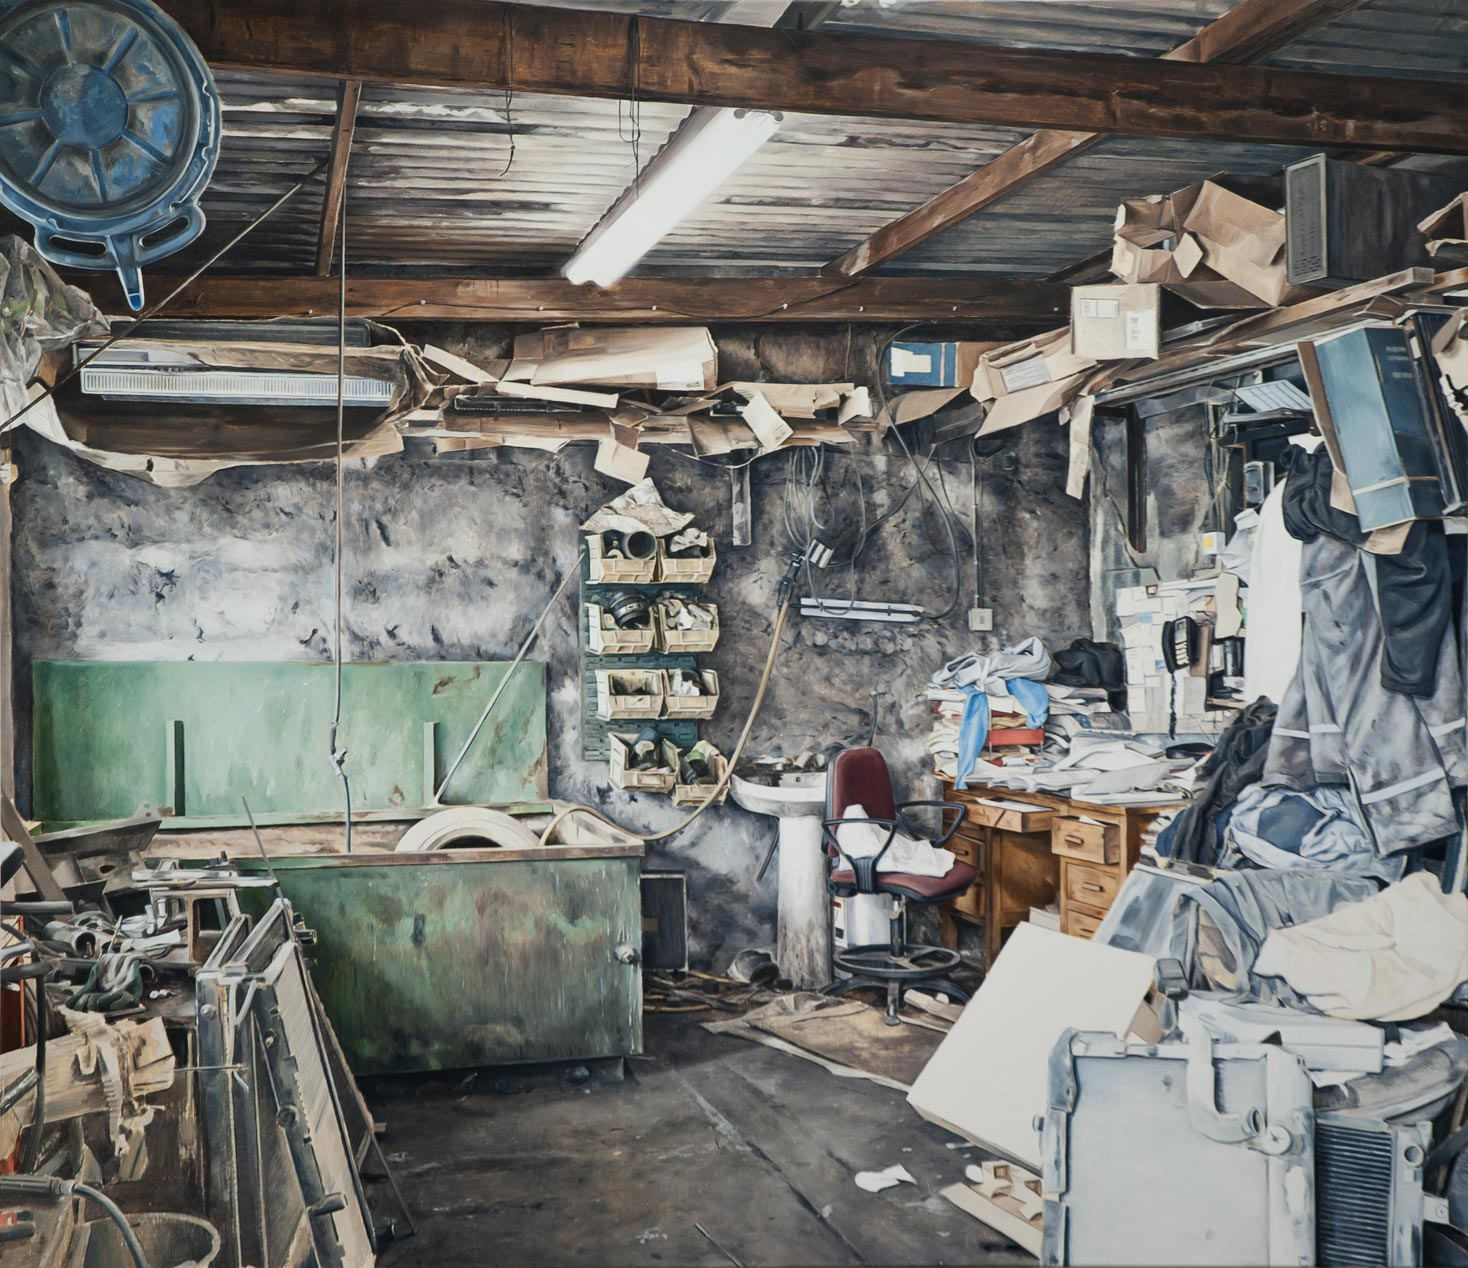 Kevin-Cosgrove_Workshop-With-Desk_copyright_the-artist-and-mother's-tankstation